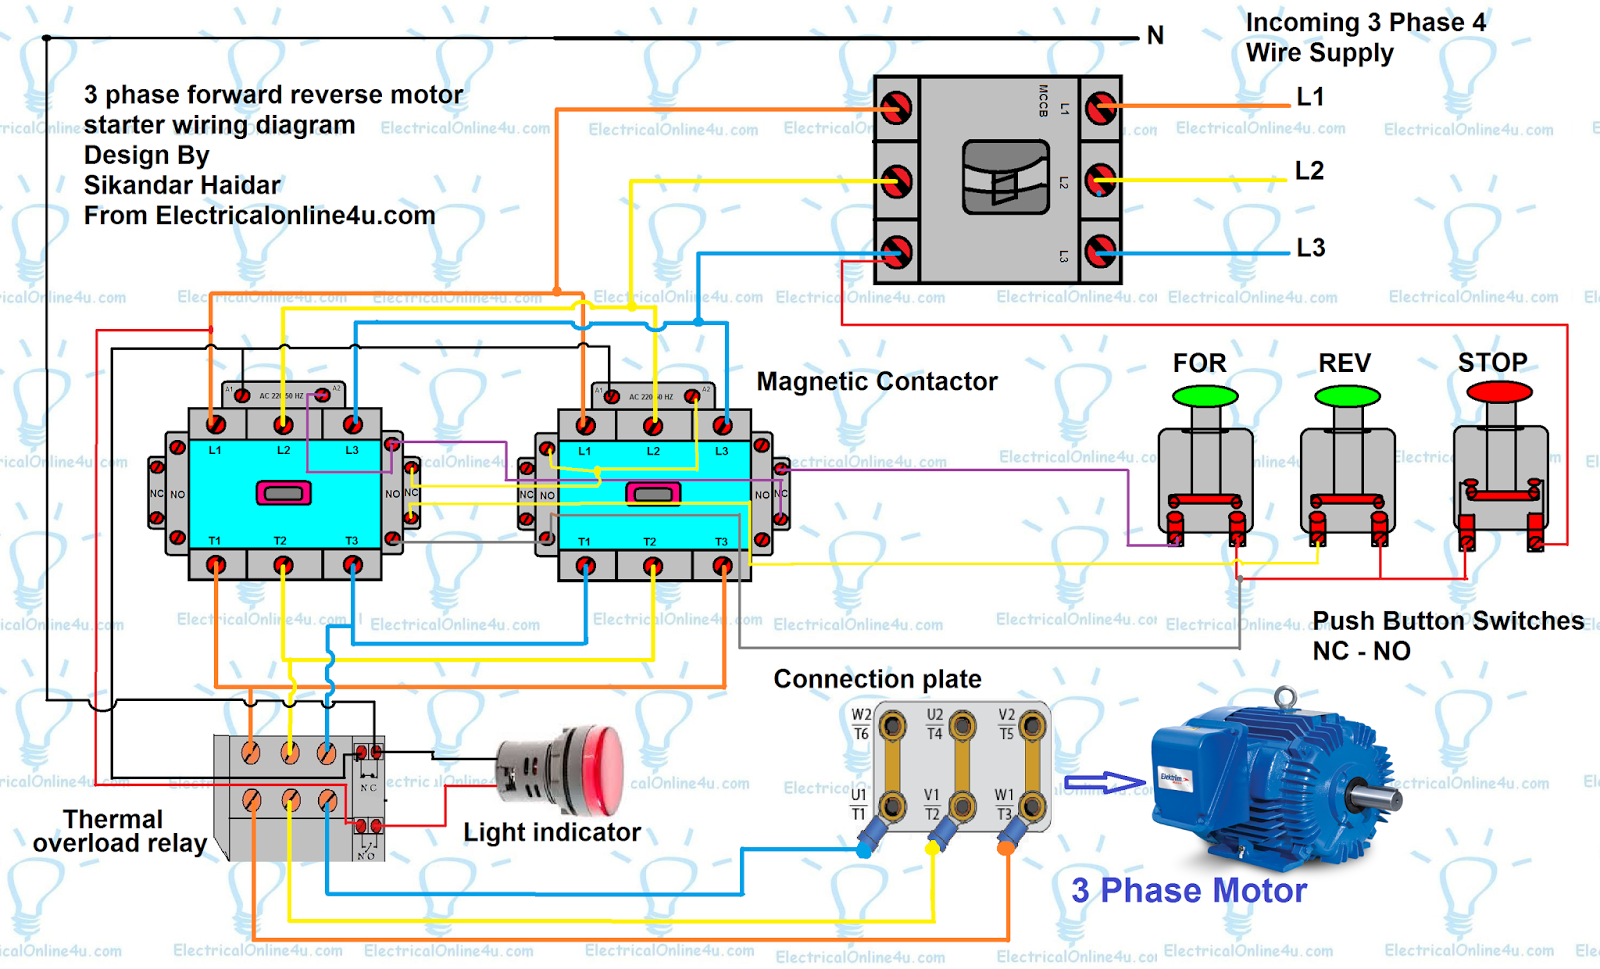 forward reverse motor control diagram for 3 phase motor electrical how to wire a double pole circuit breaker electrical online 4u [ 1600 x 969 Pixel ]